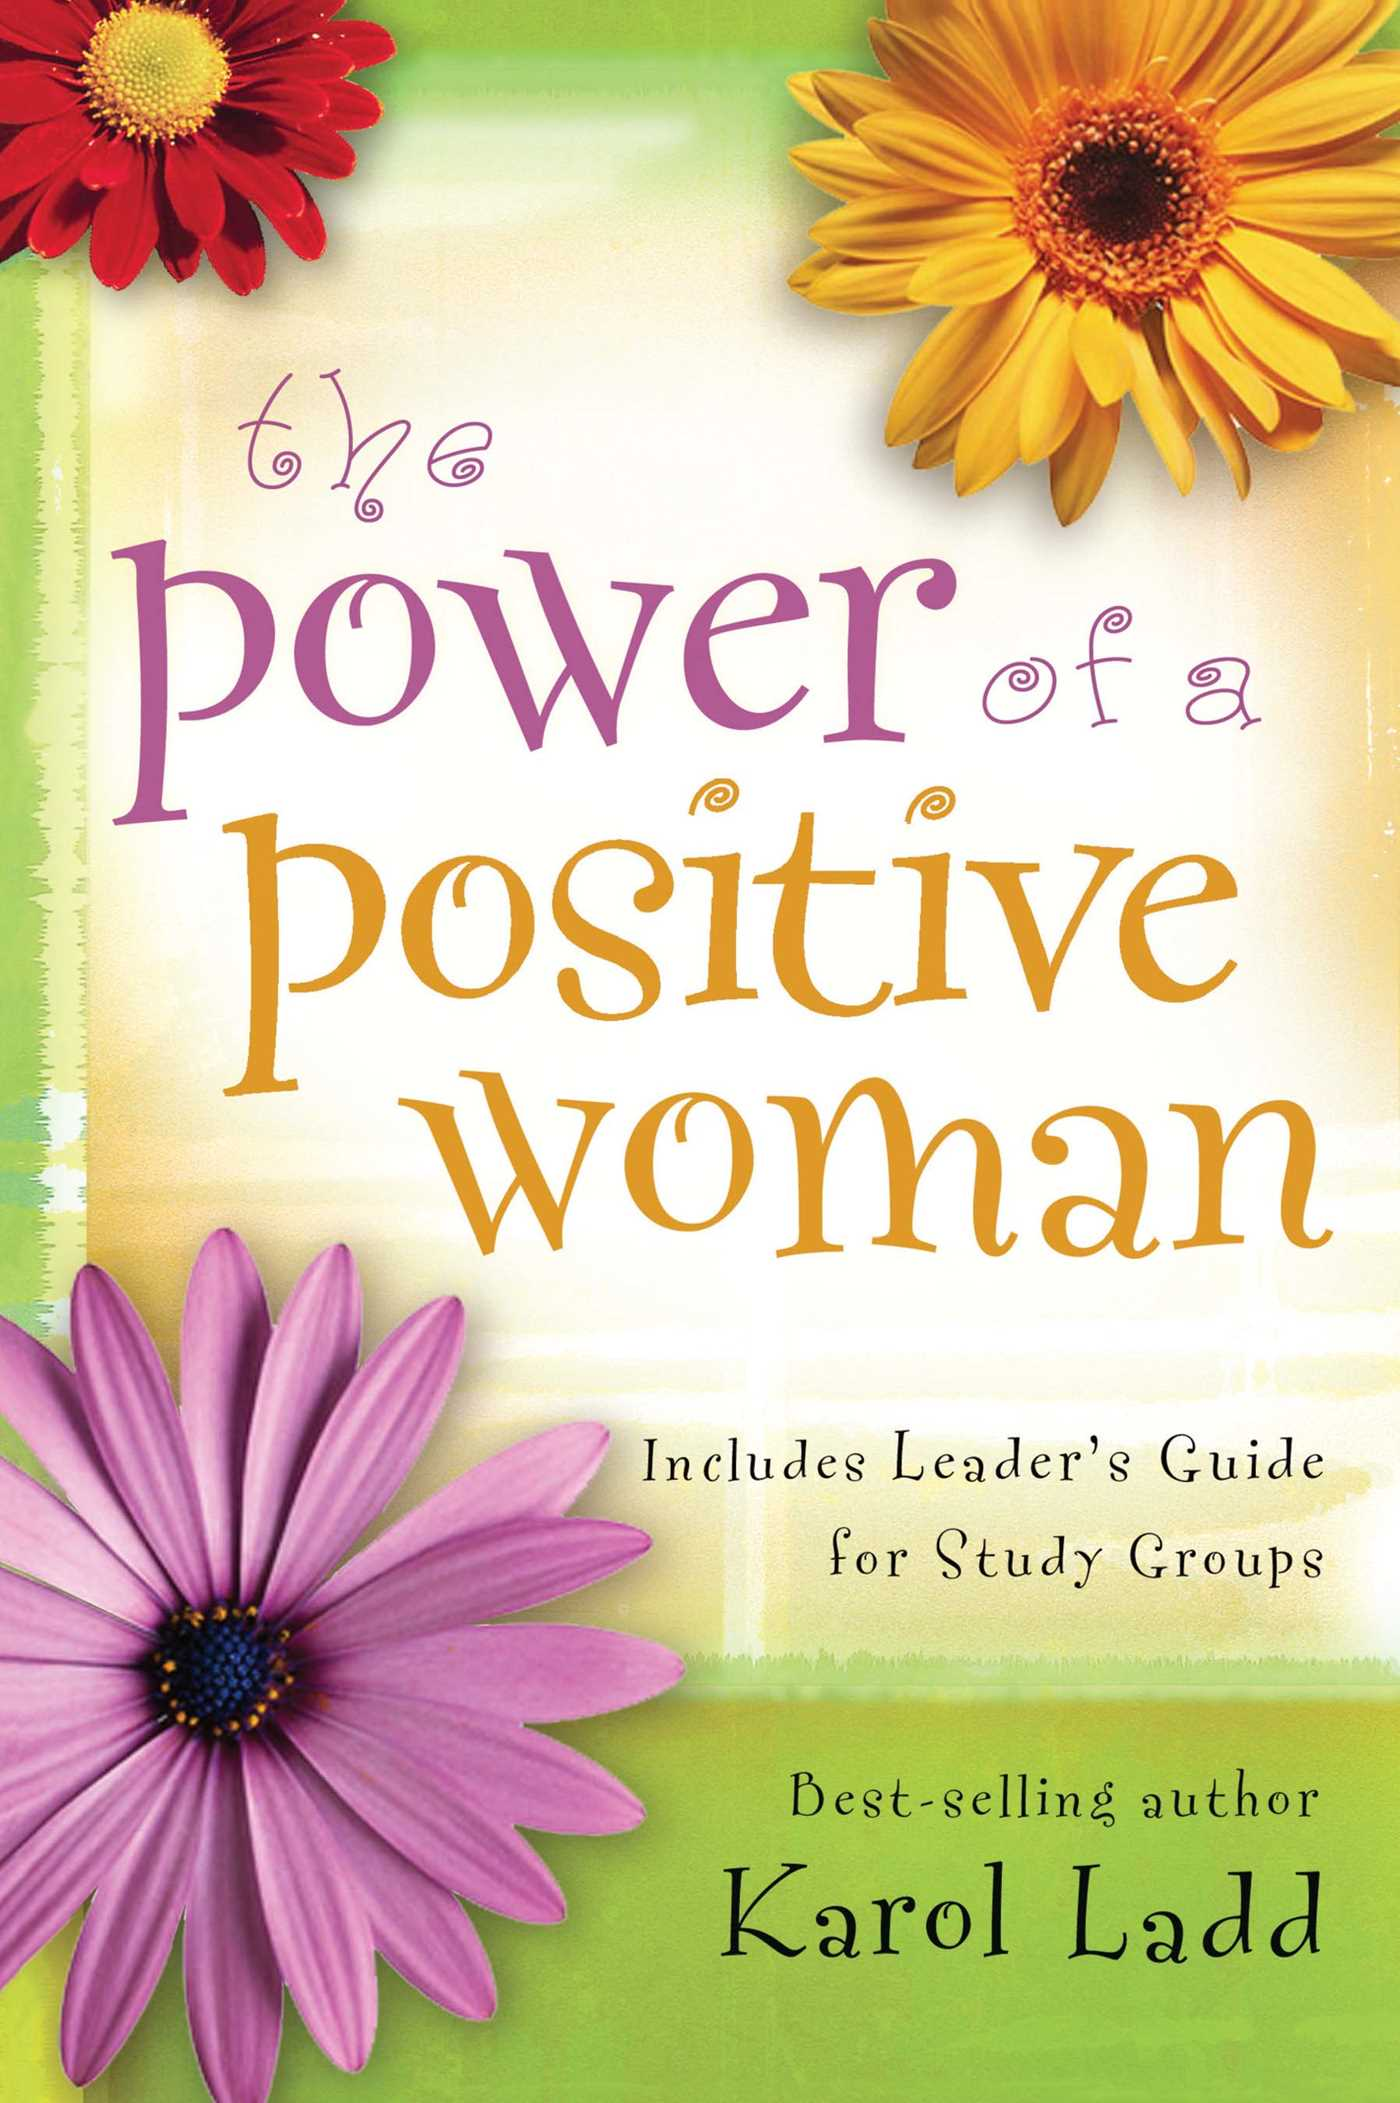 Power-of-a-positive-woman-9781416533580_hr